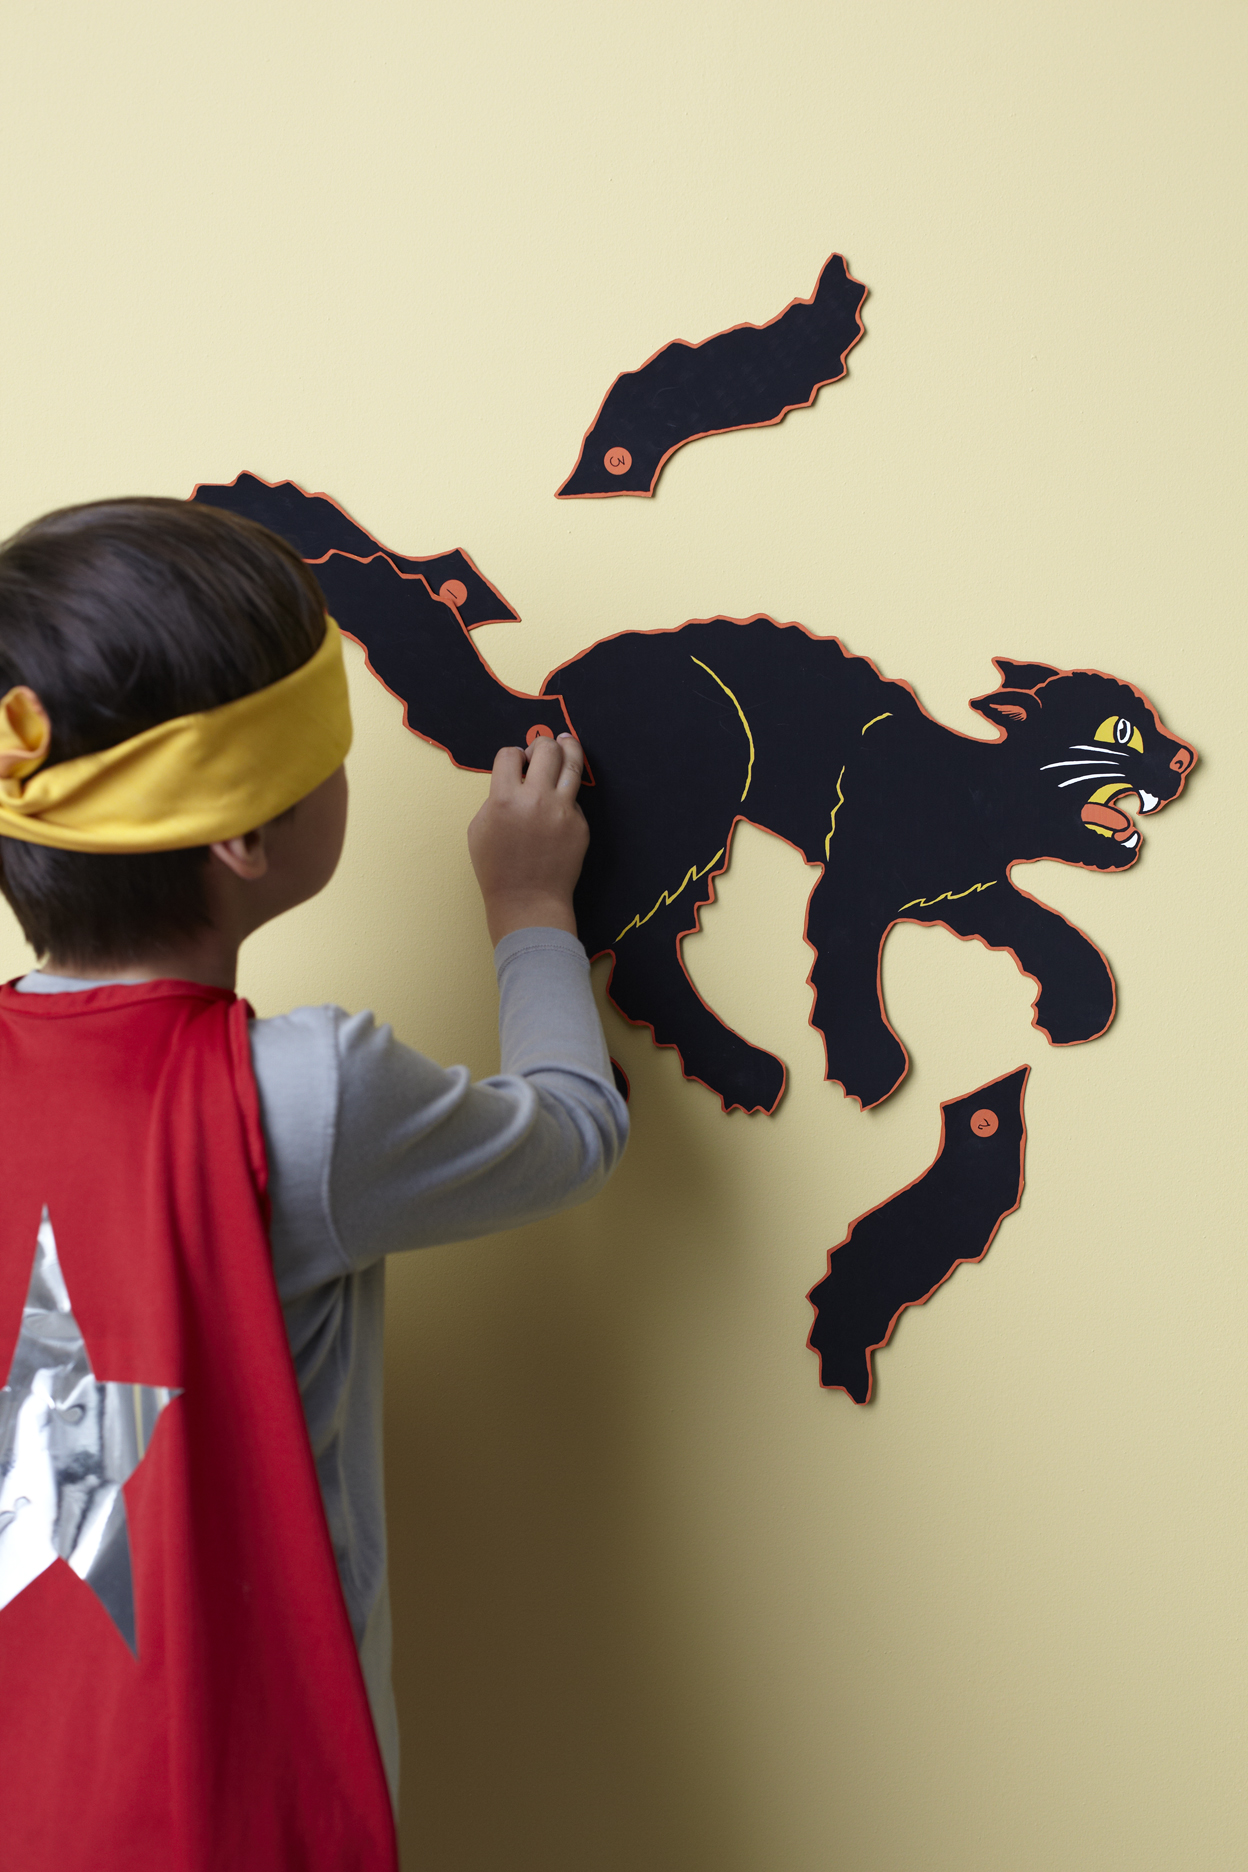 pin the tail on the cat game for Halloween